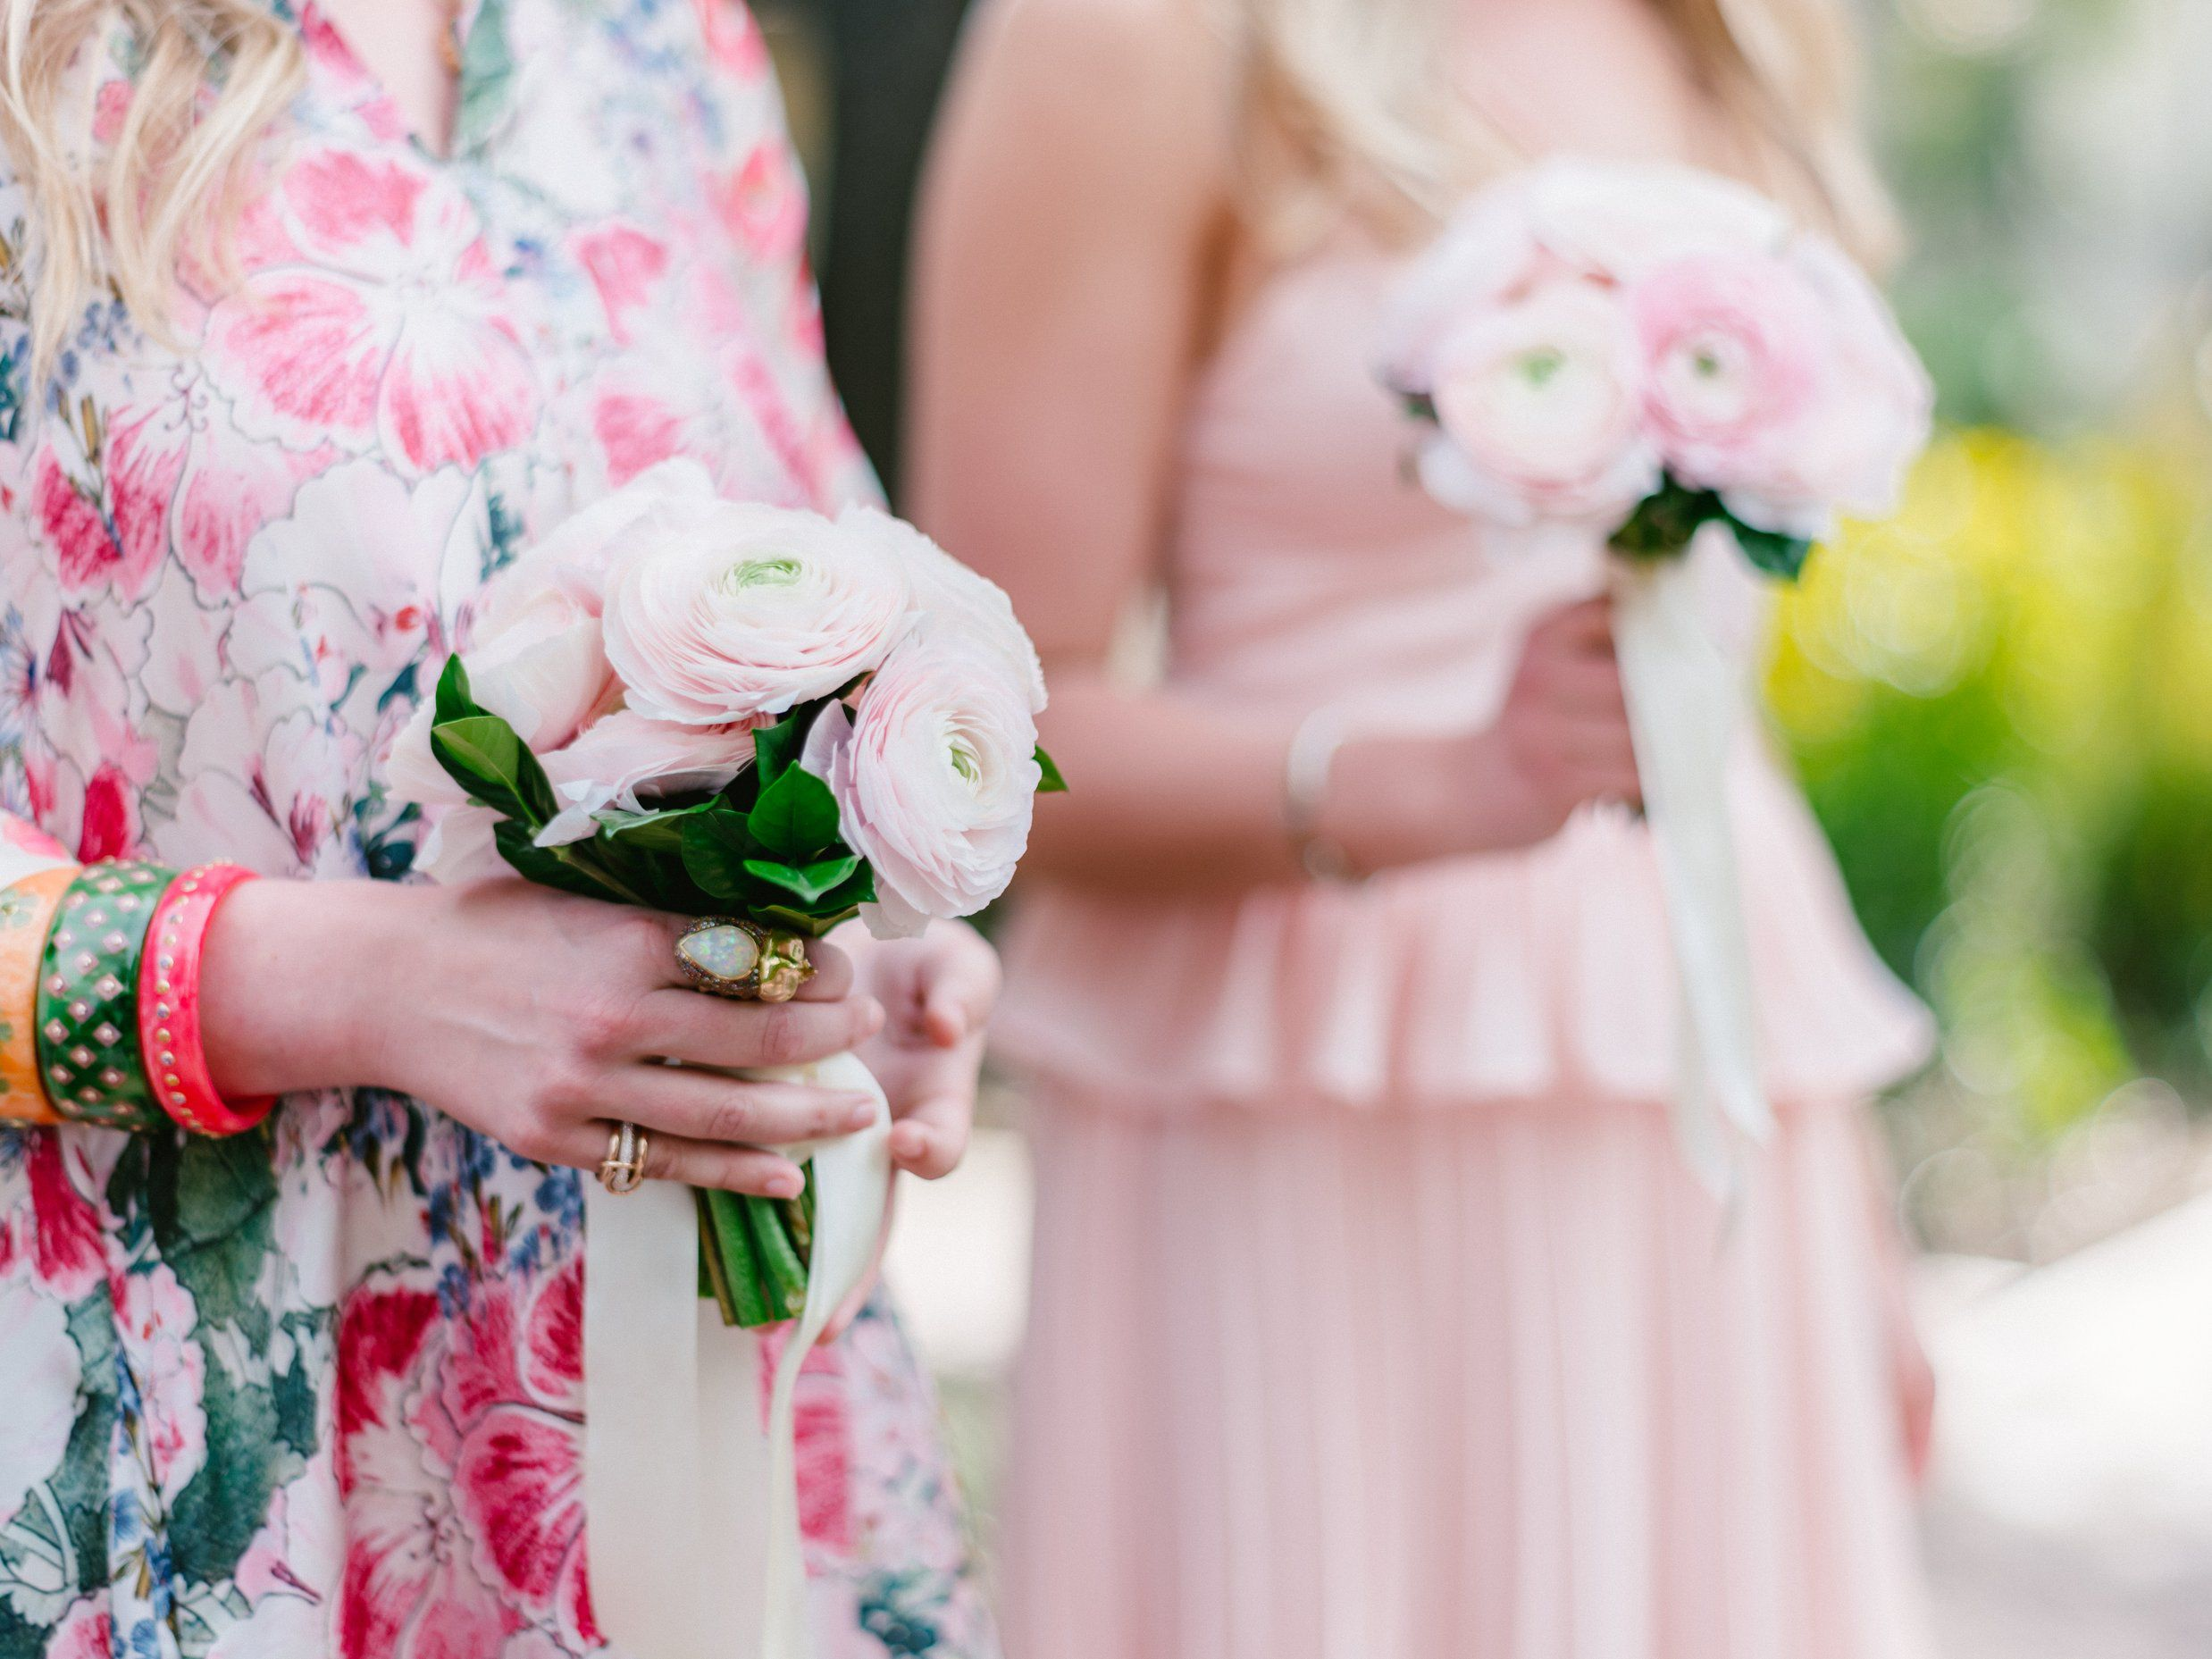 How to Make Your Maid of Honor Stand Out From the Rest of Your Bridal Party